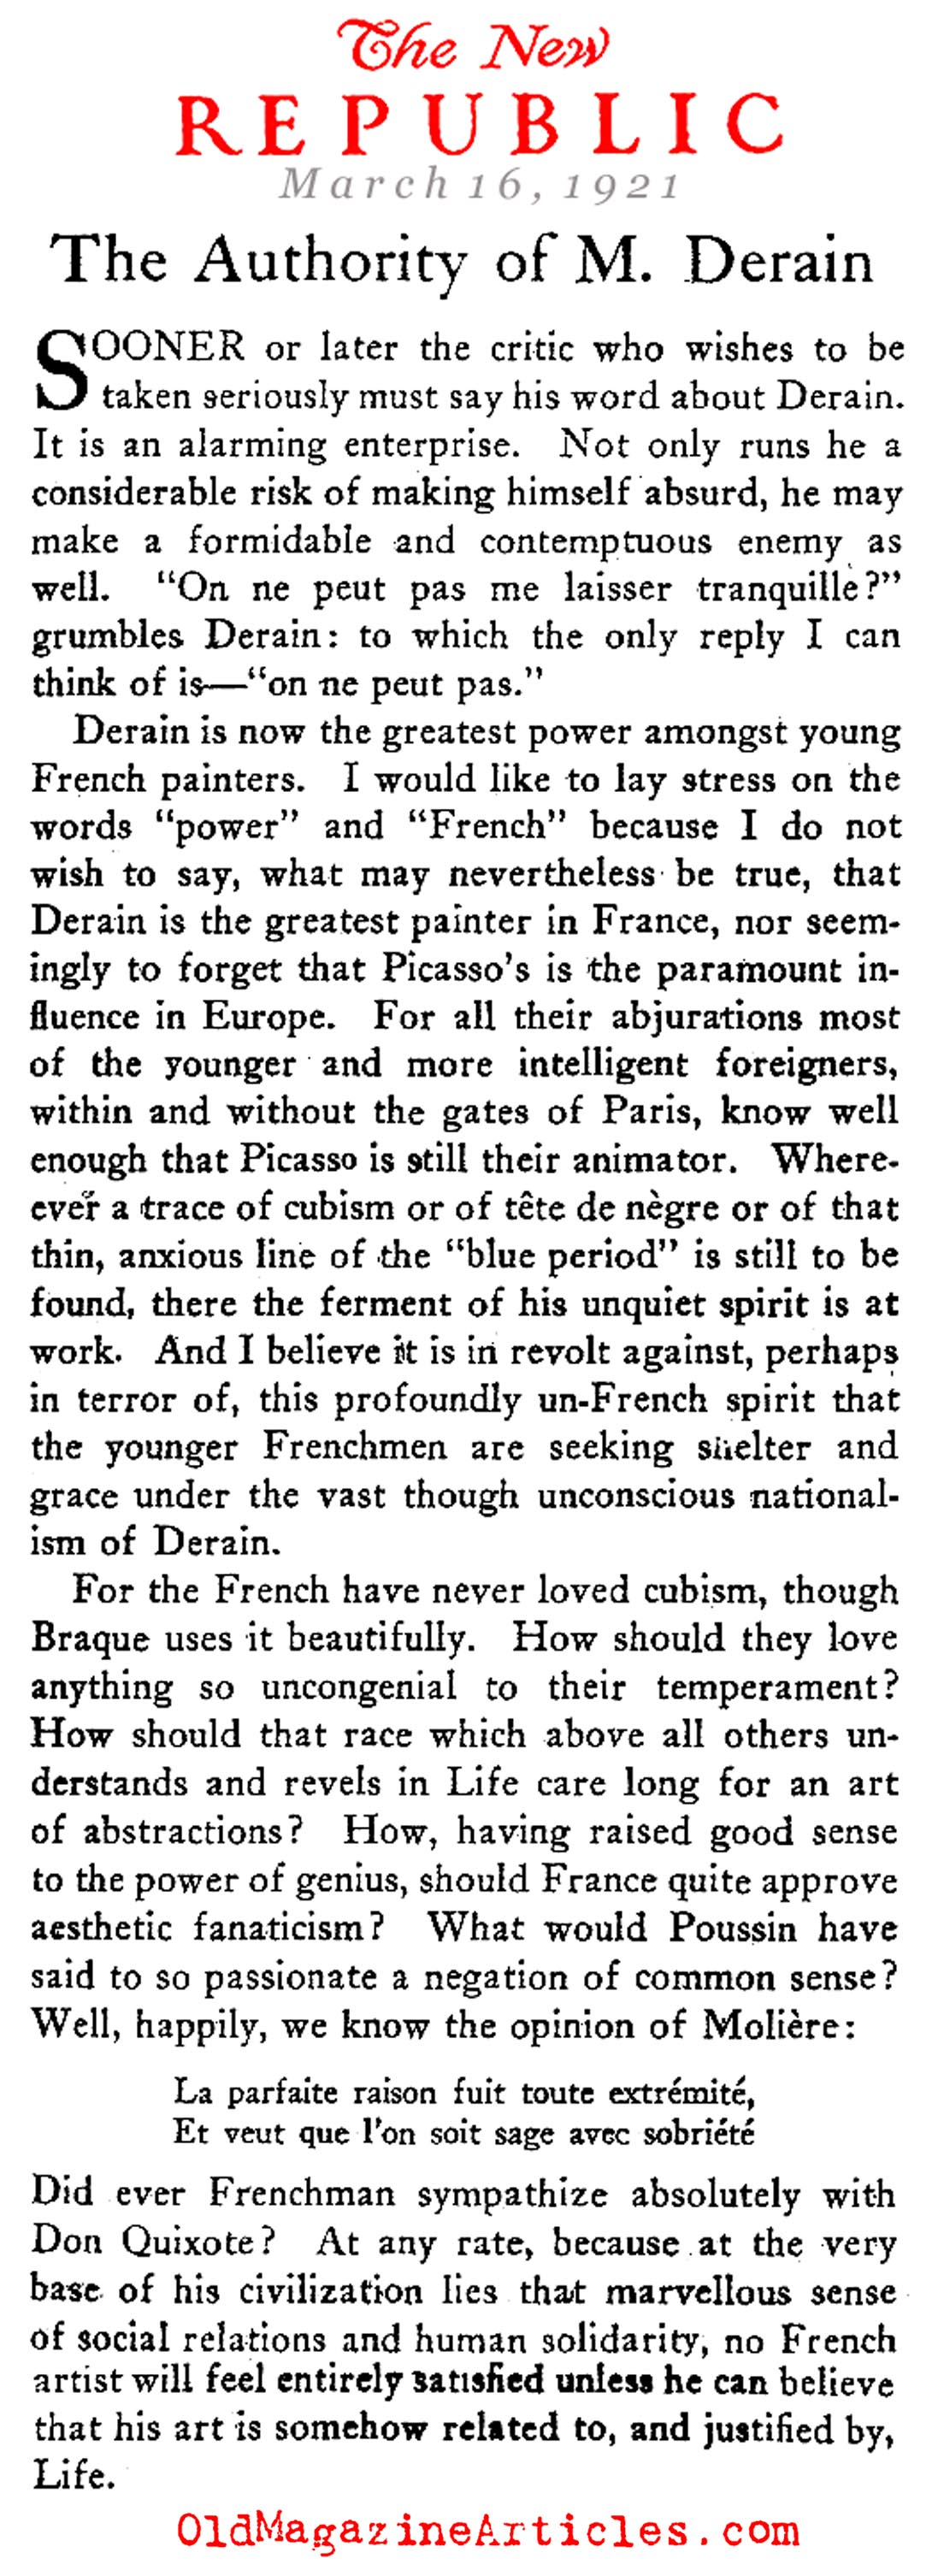 Clive Bell on Andre Derain  (The New Republic, 1921)